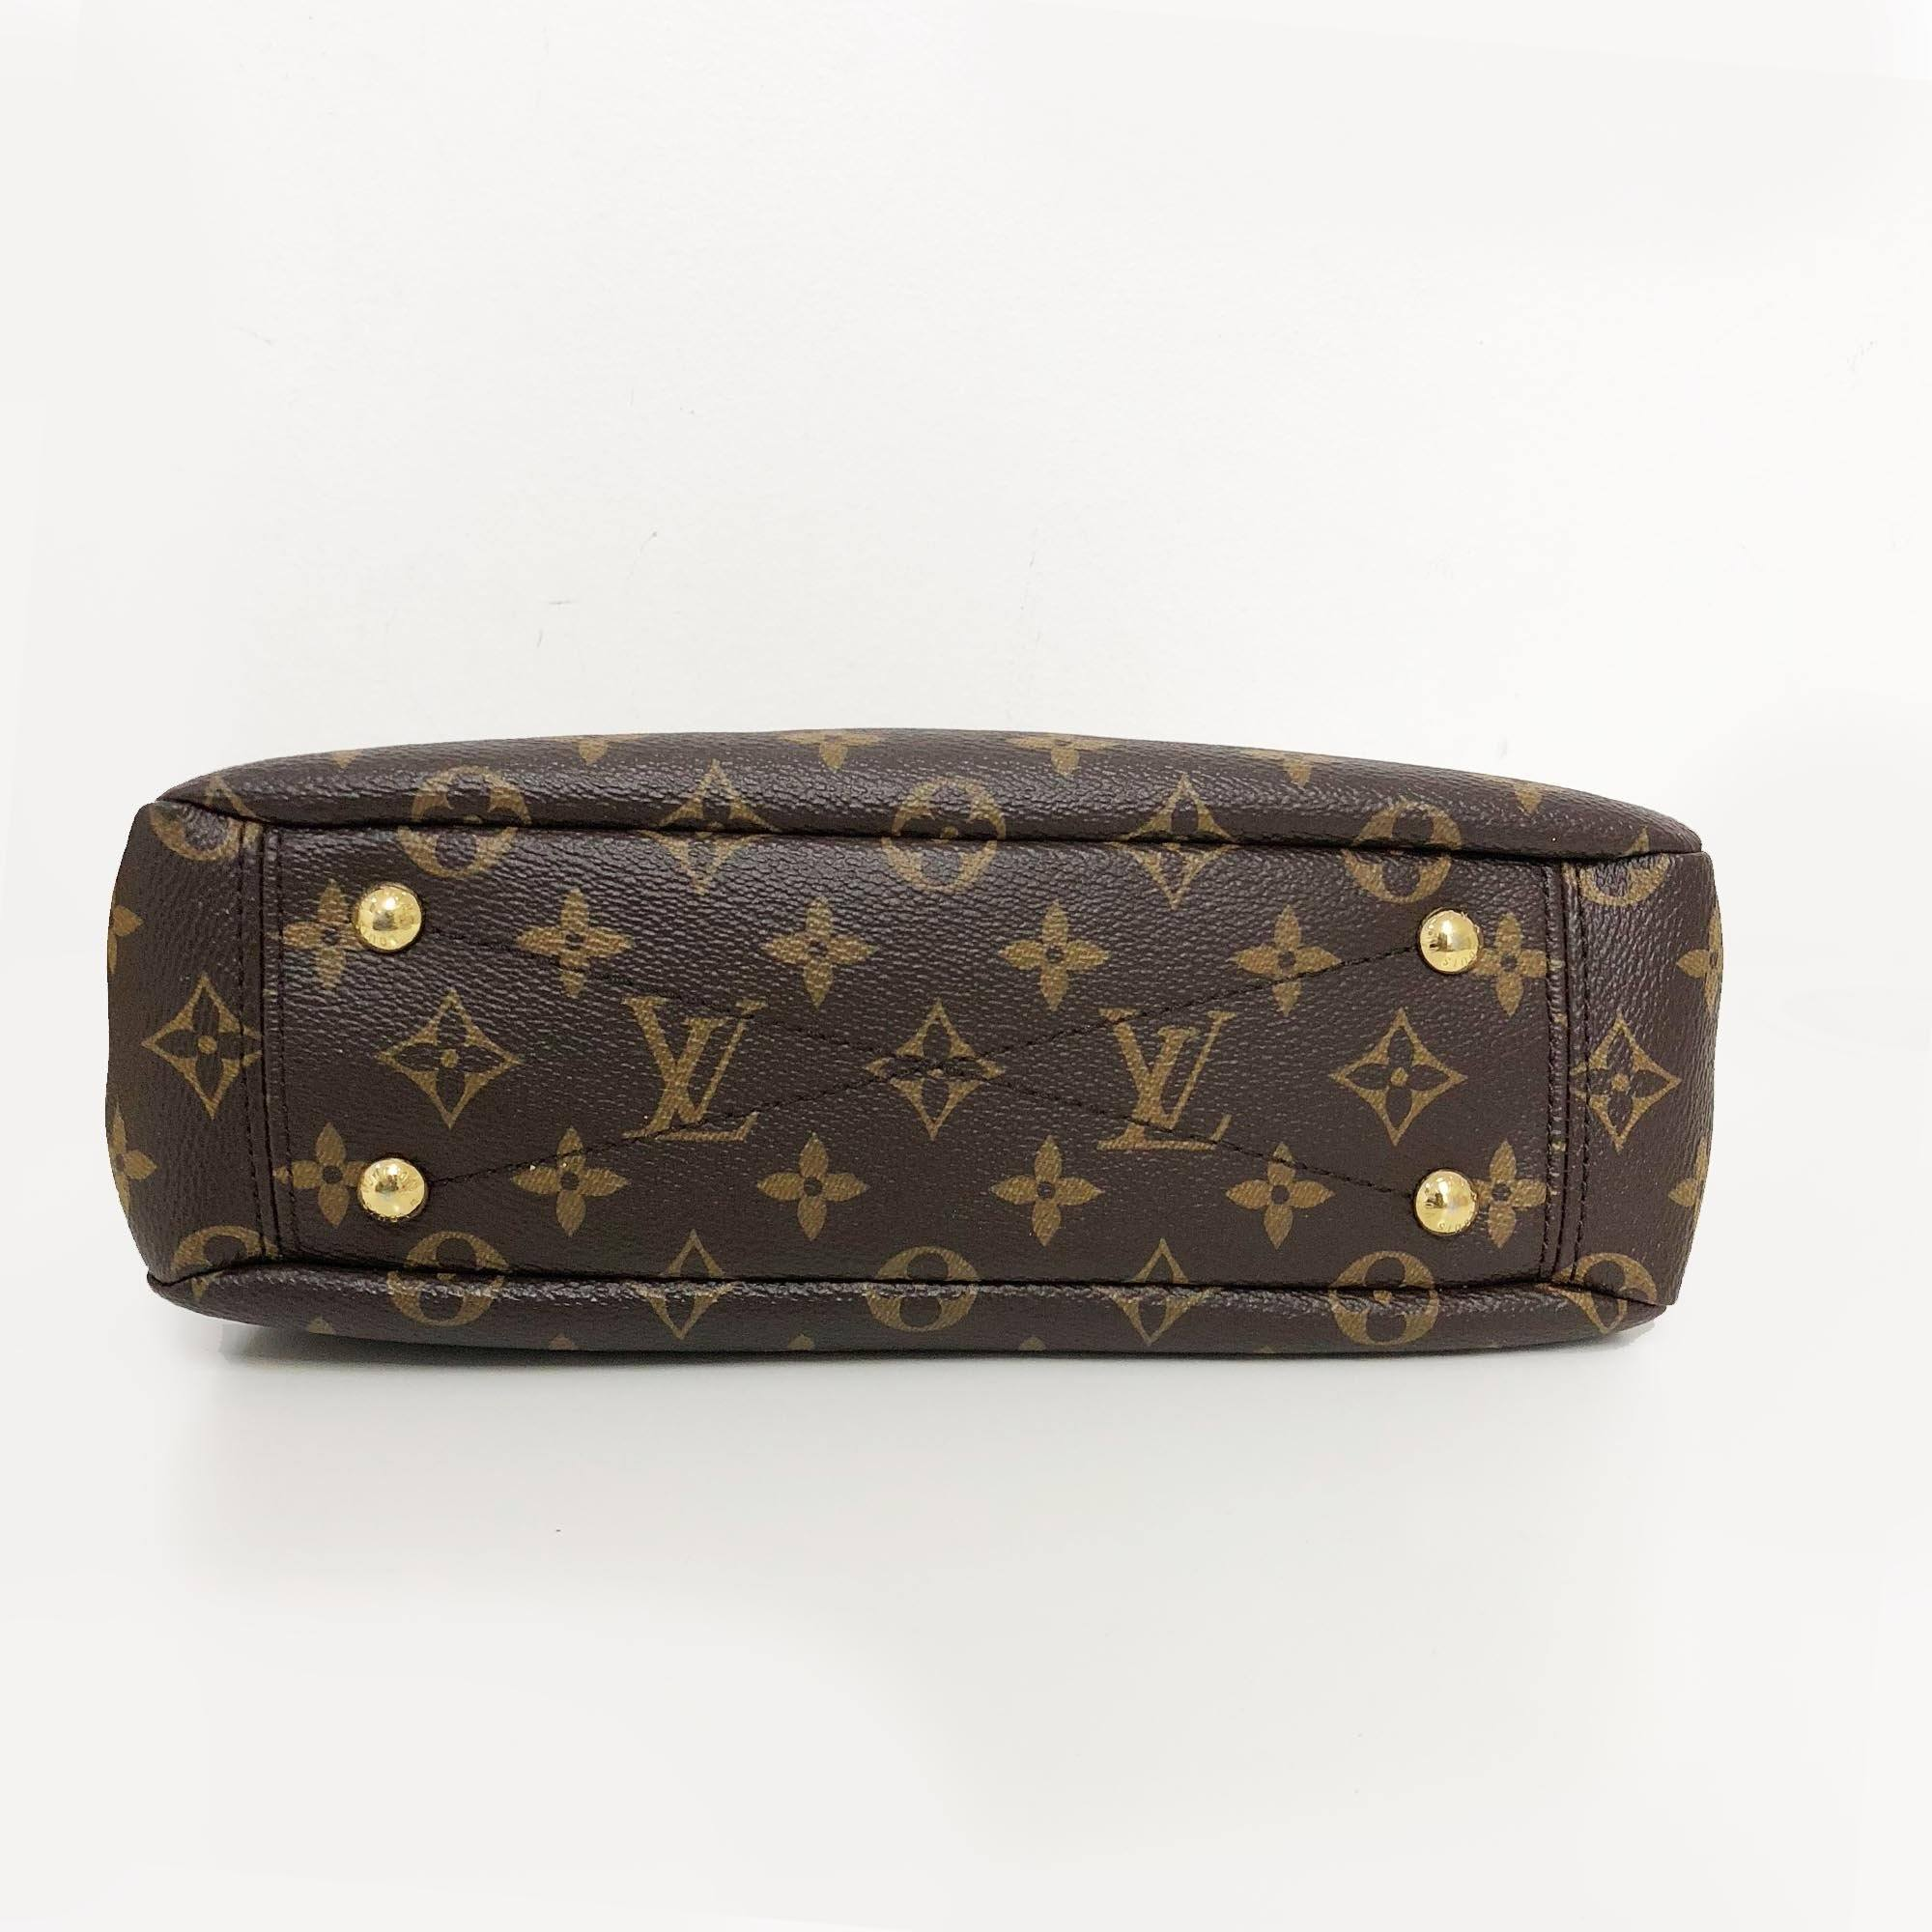 Louis Vuitton Pallas Monogram BB Canvas Cross Body Bag